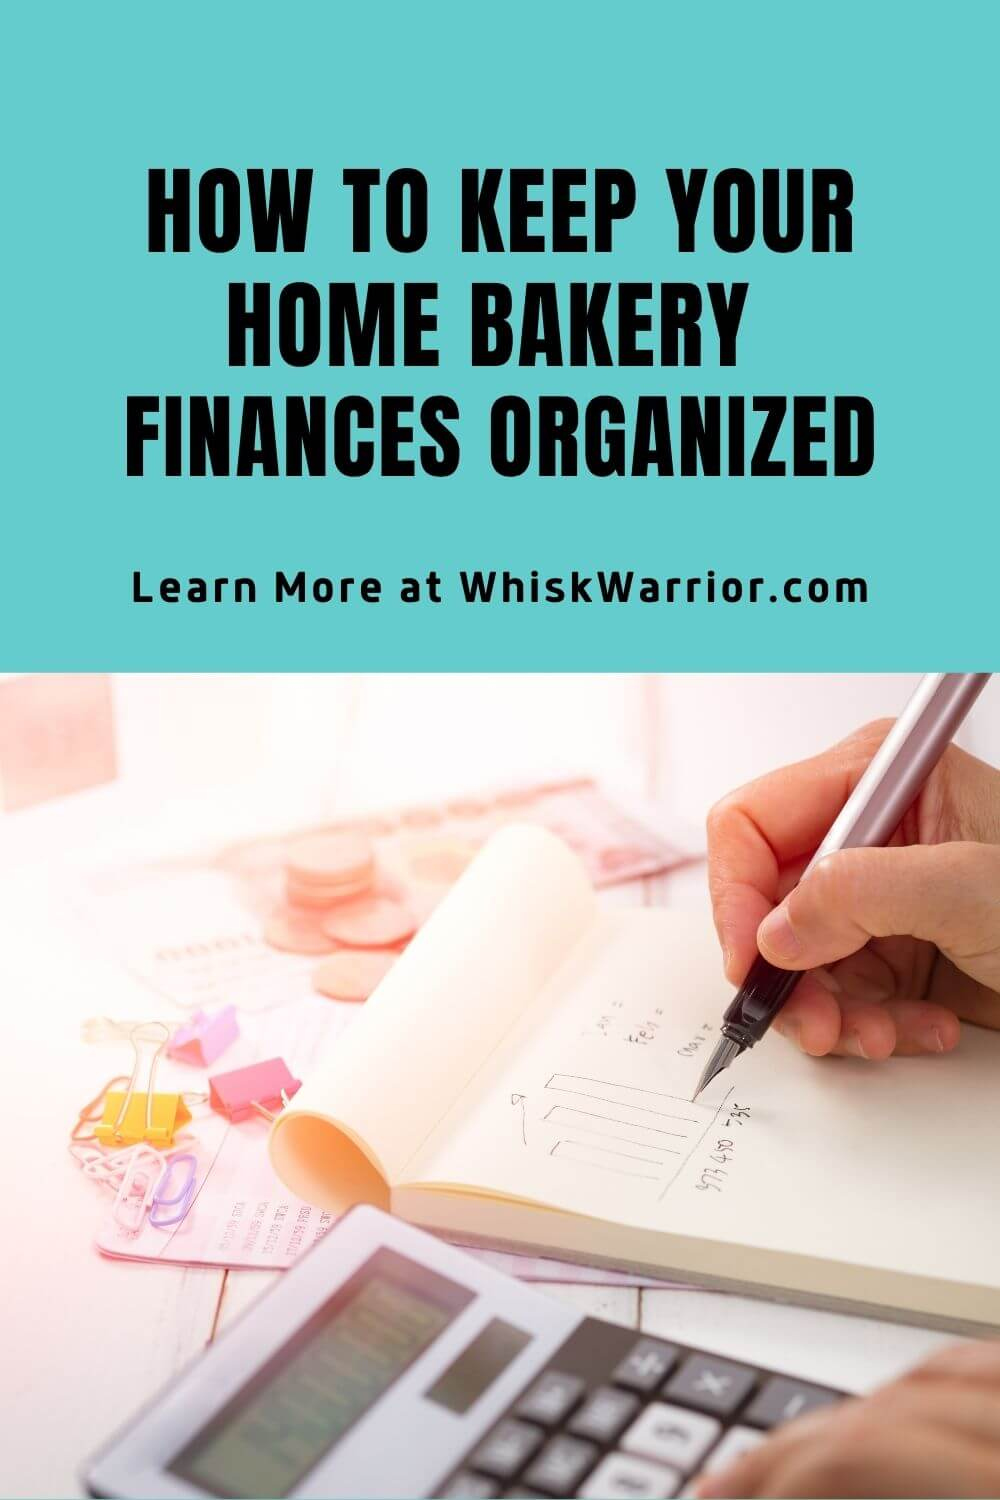 Tips and tricks for getting a better tracking on the finances of your home bakery. #homebakery #homebakingbusiness #bakingbusiness